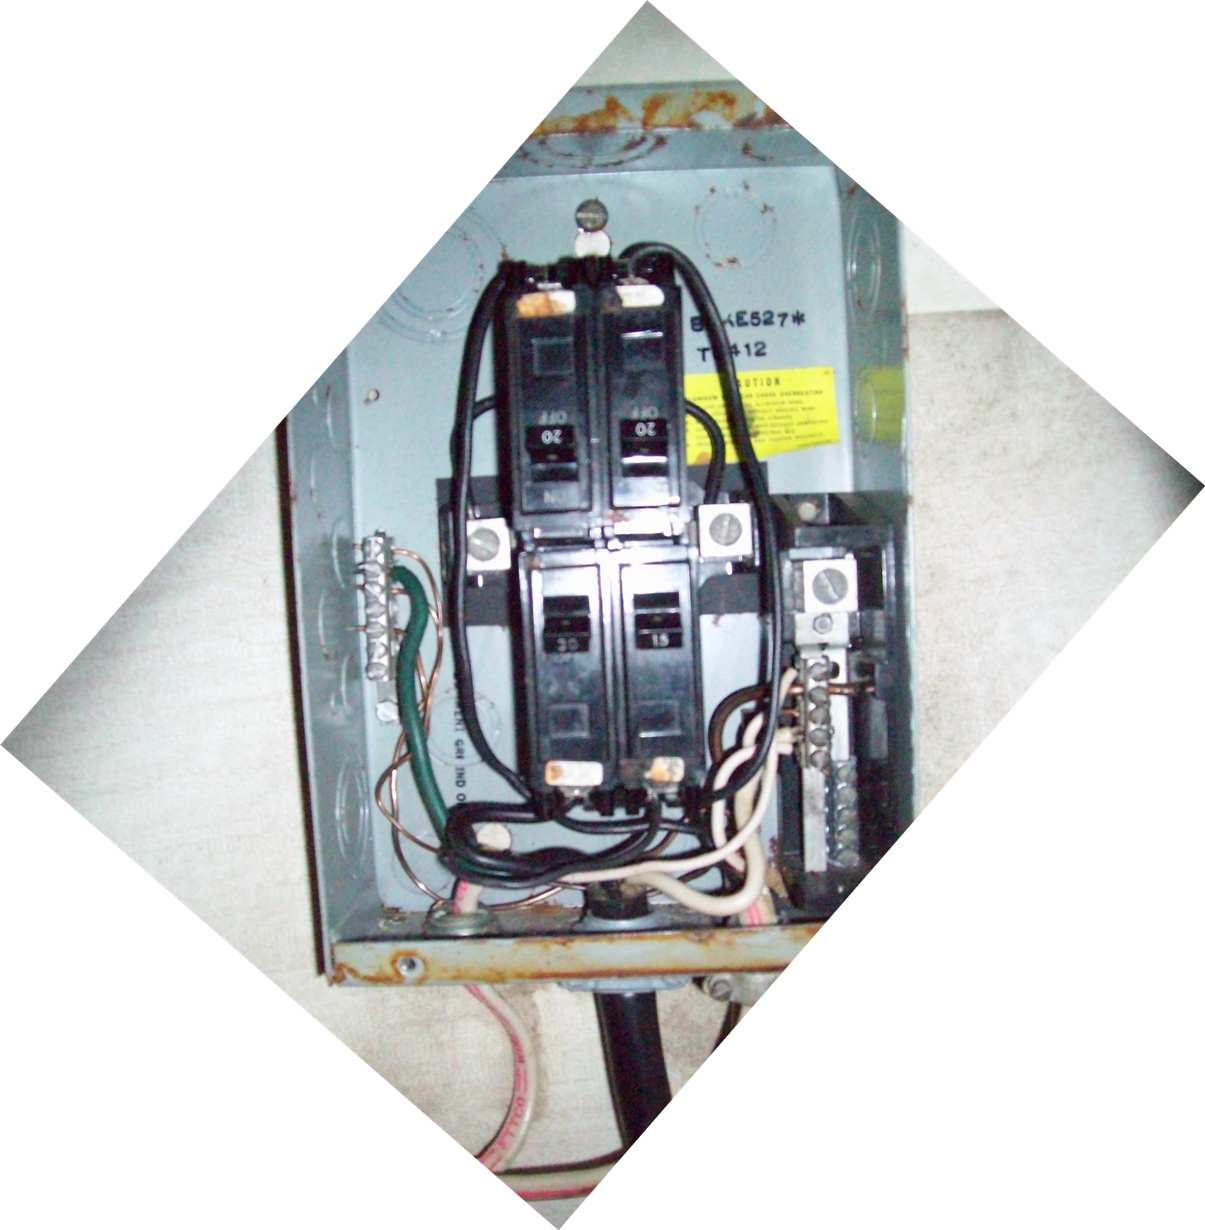 Click image for larger version  Name:power panel as found.jpg Views:65 Size:107.7 KB ID:102863